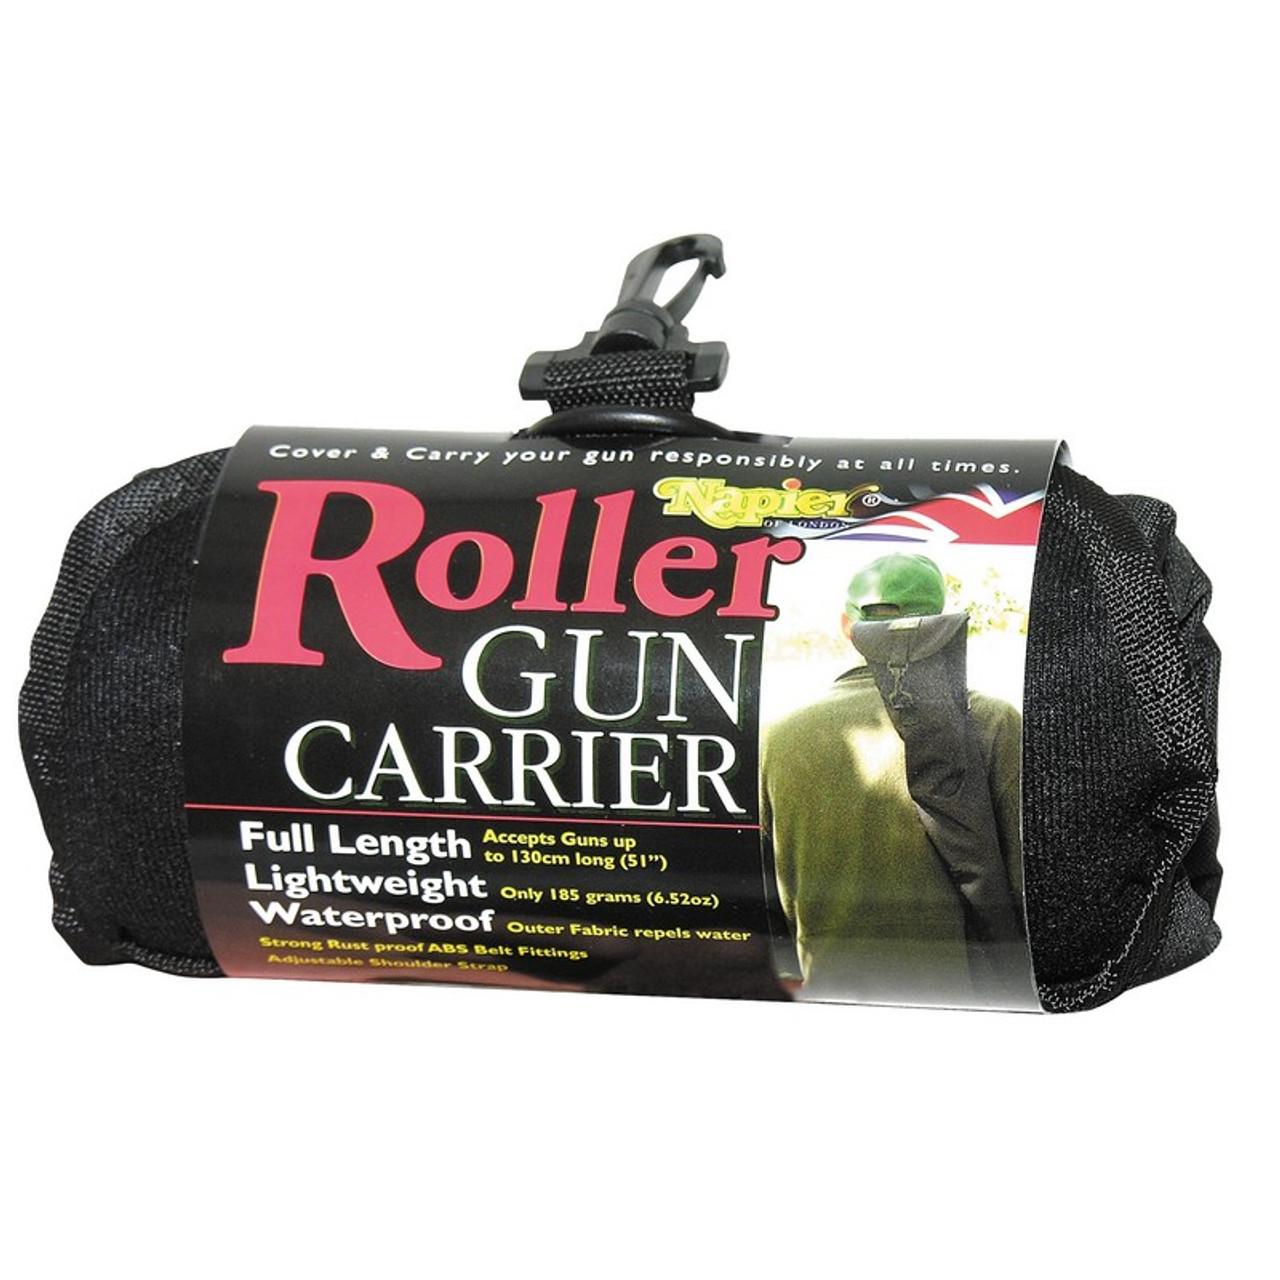 Napier Roller Shotgun Carrier